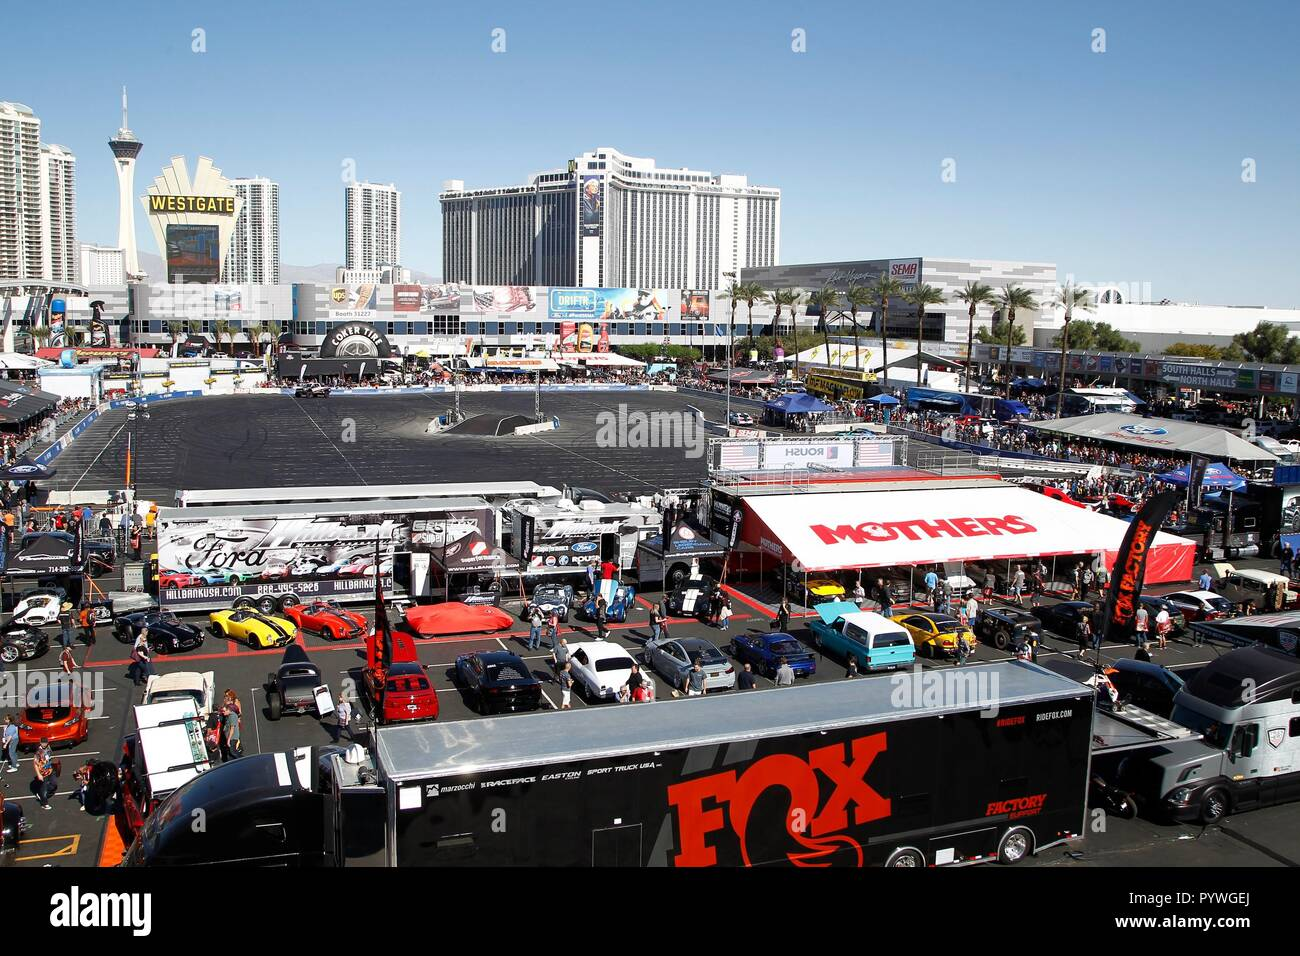 Las Vegas Nv Usa 30th Oct 2018 Atmosphere In Attendance For